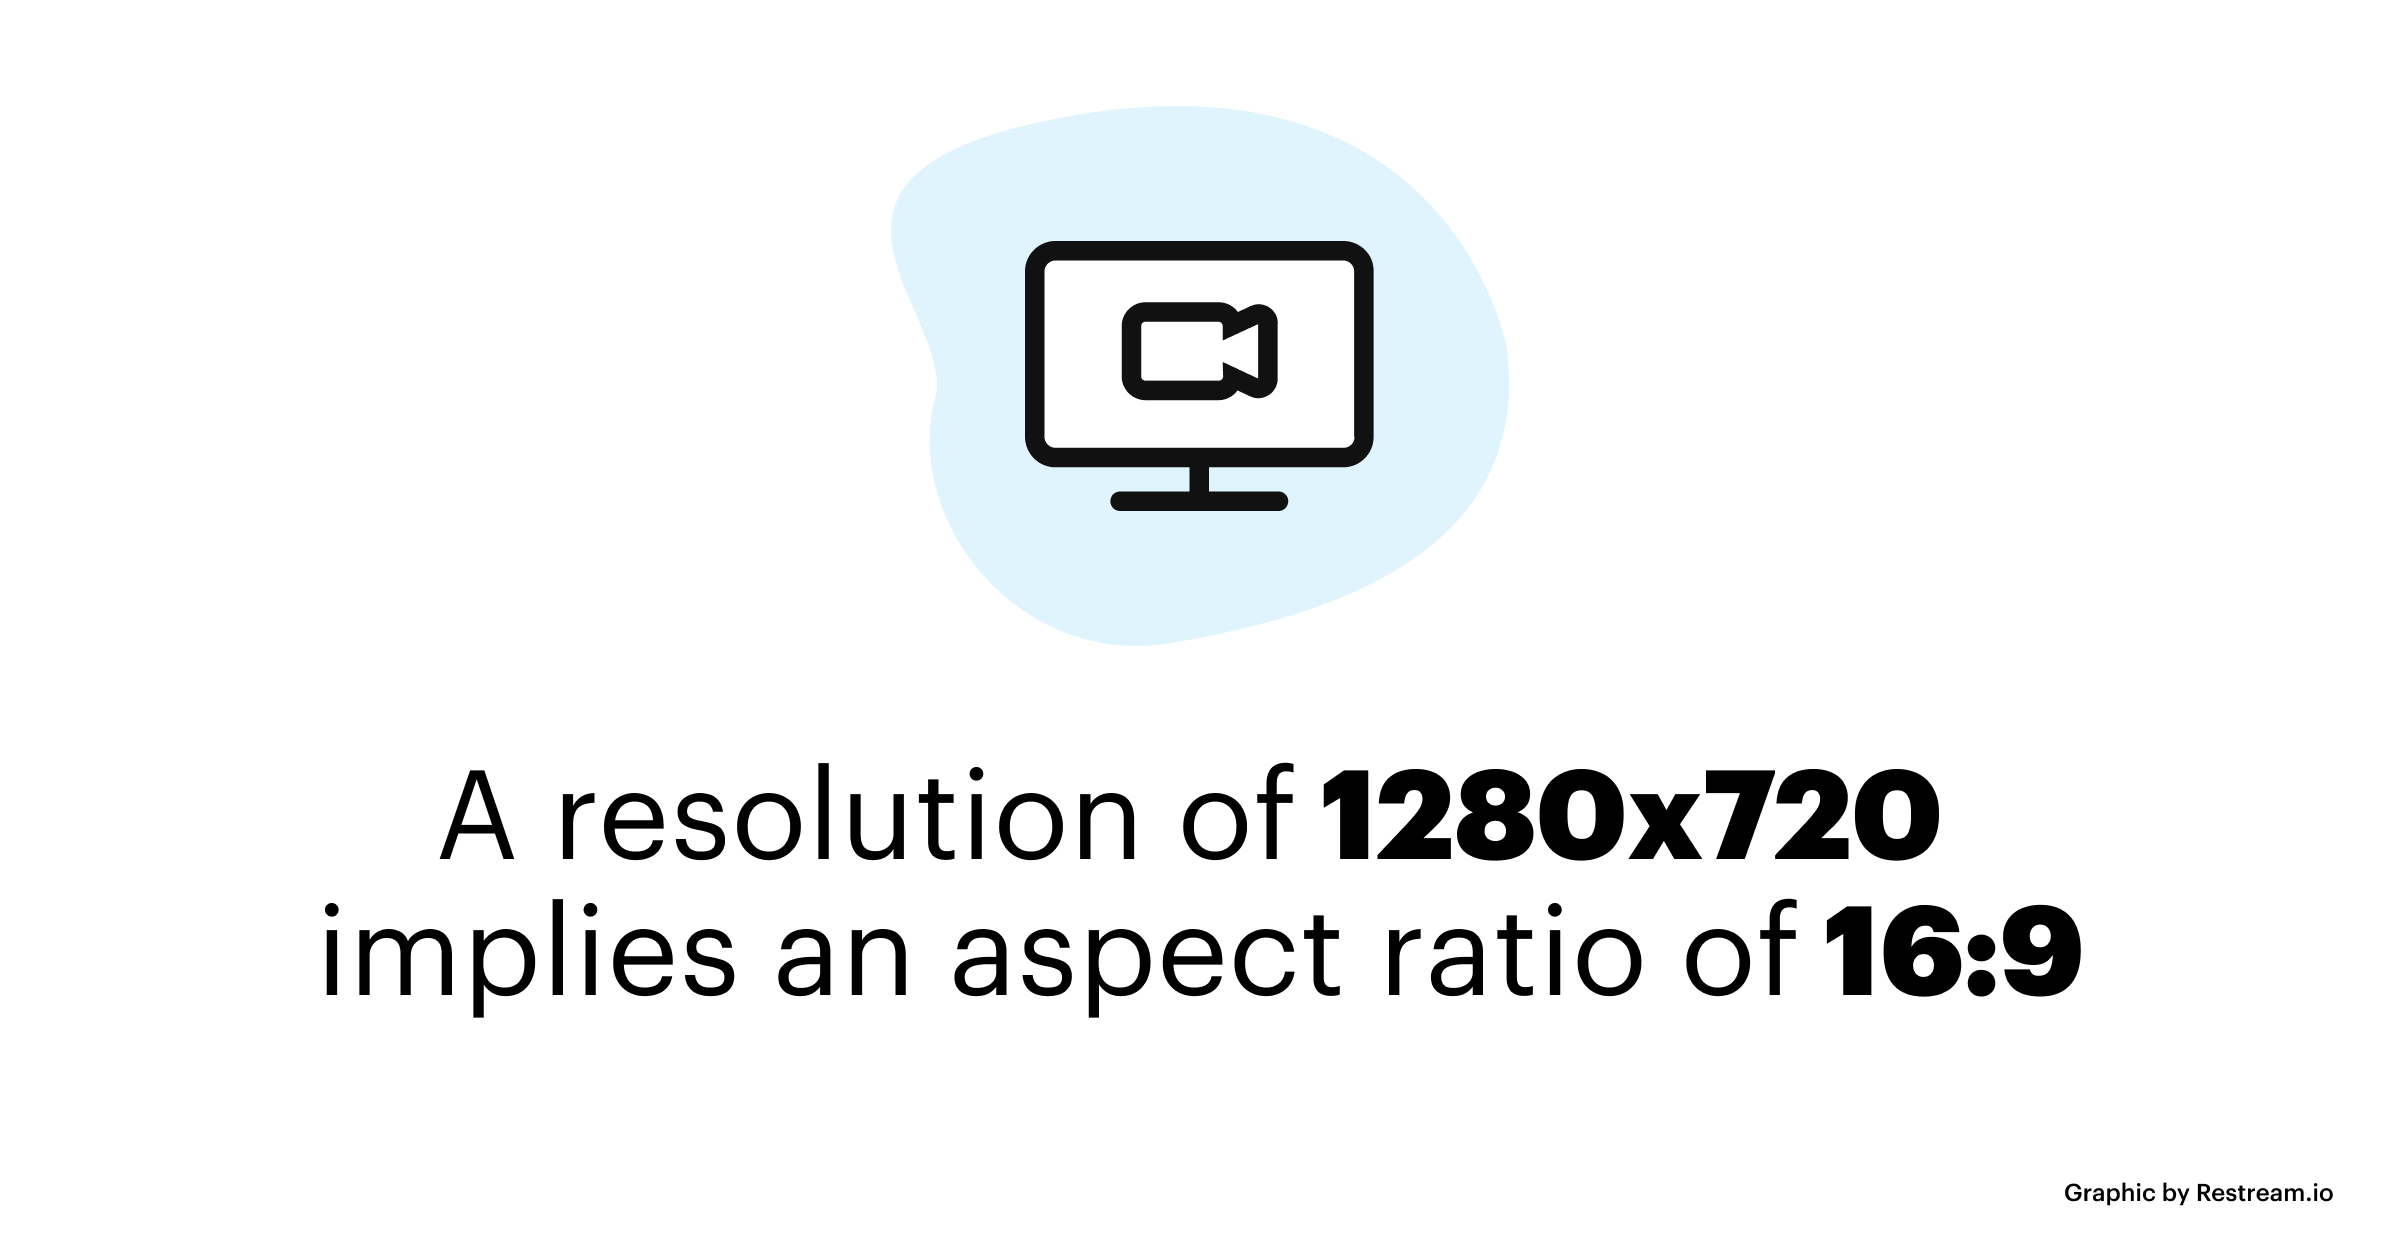 A resolution of 1280 x 720 implies an aspect ratio of 16:9